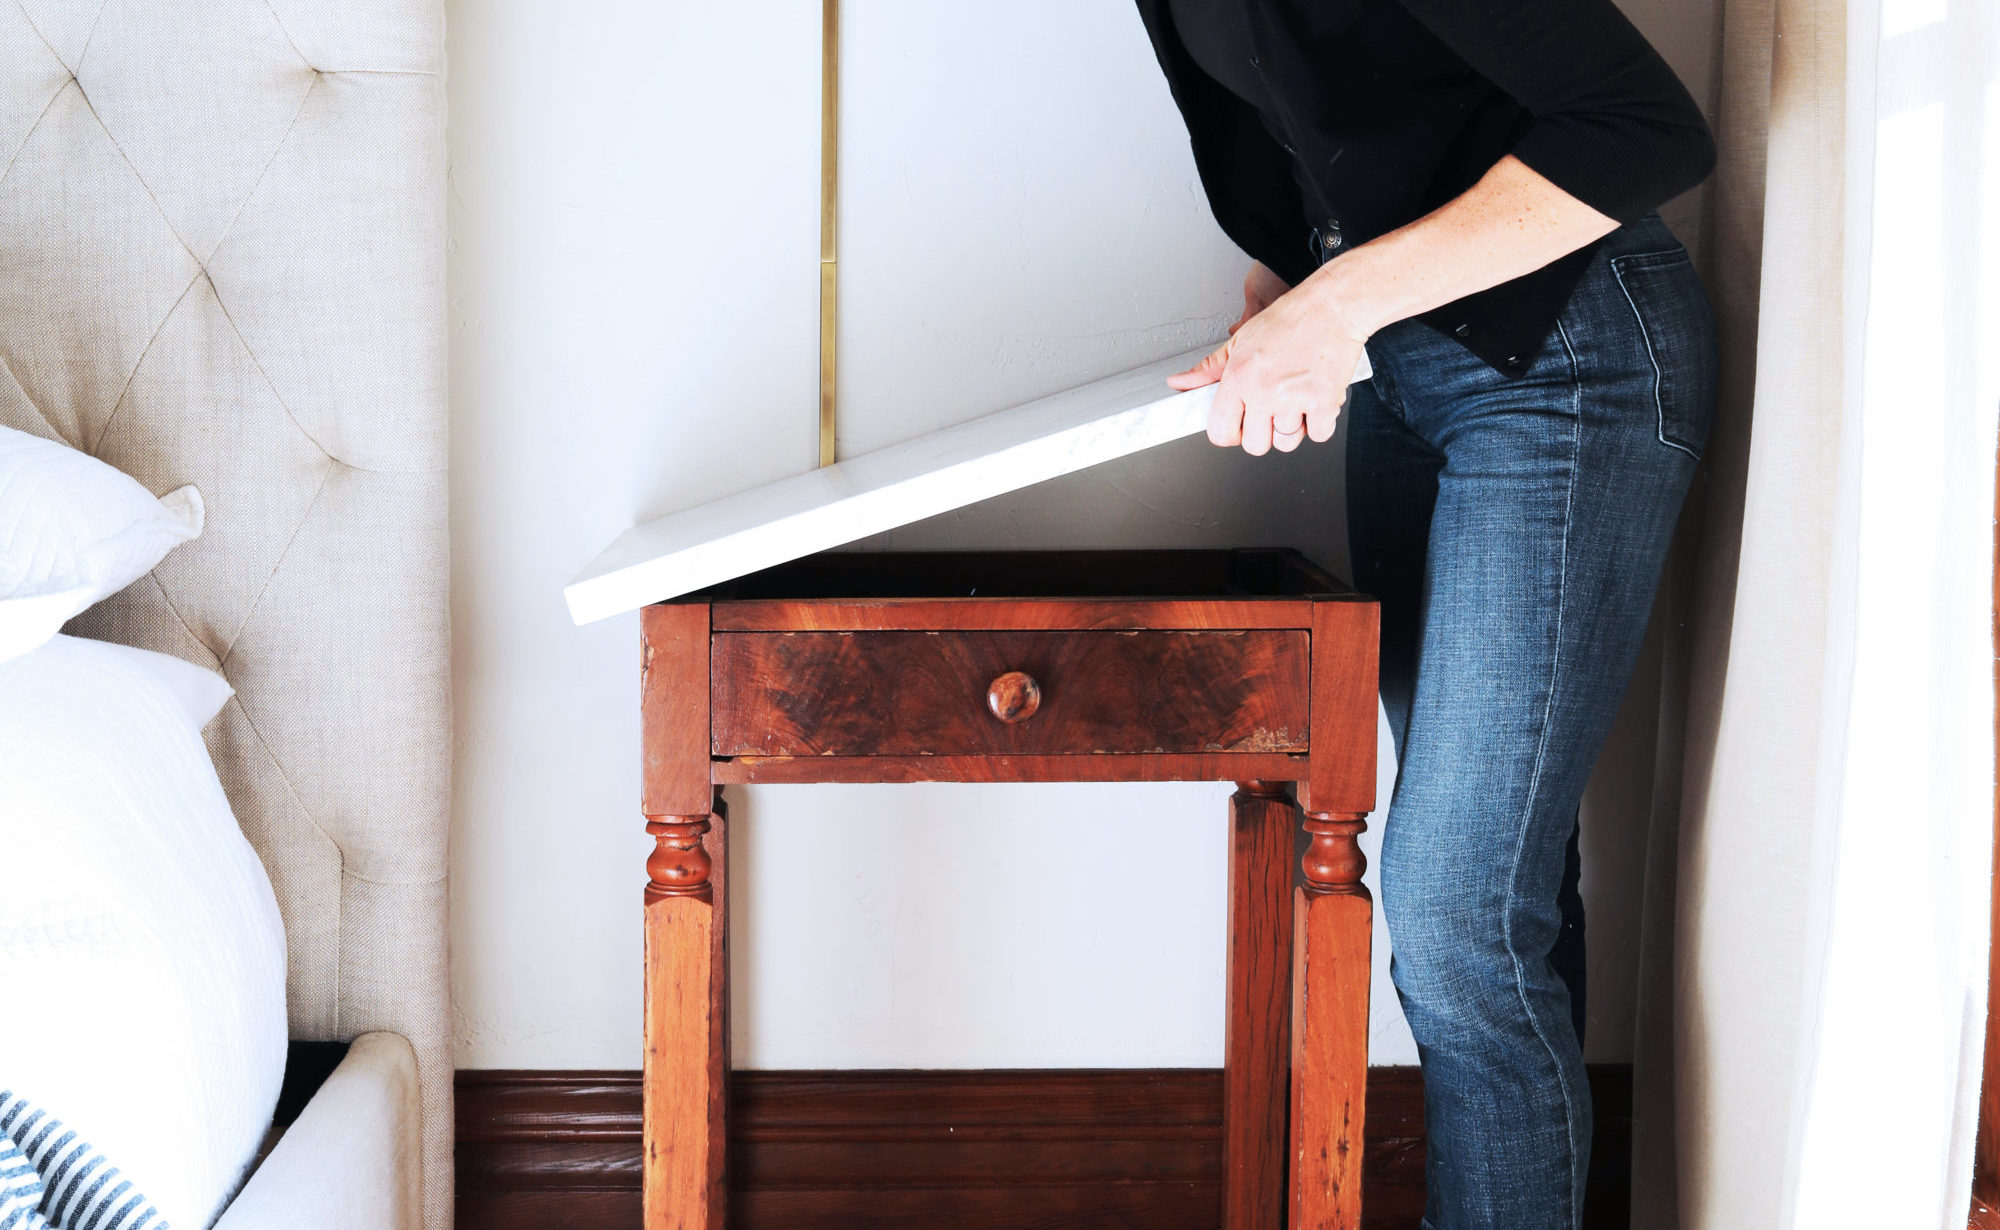 The-Grit-and-Polish-DIY-Marble-Topped-Side-Table-Glue-place-top-2-e1543296932711.jpg